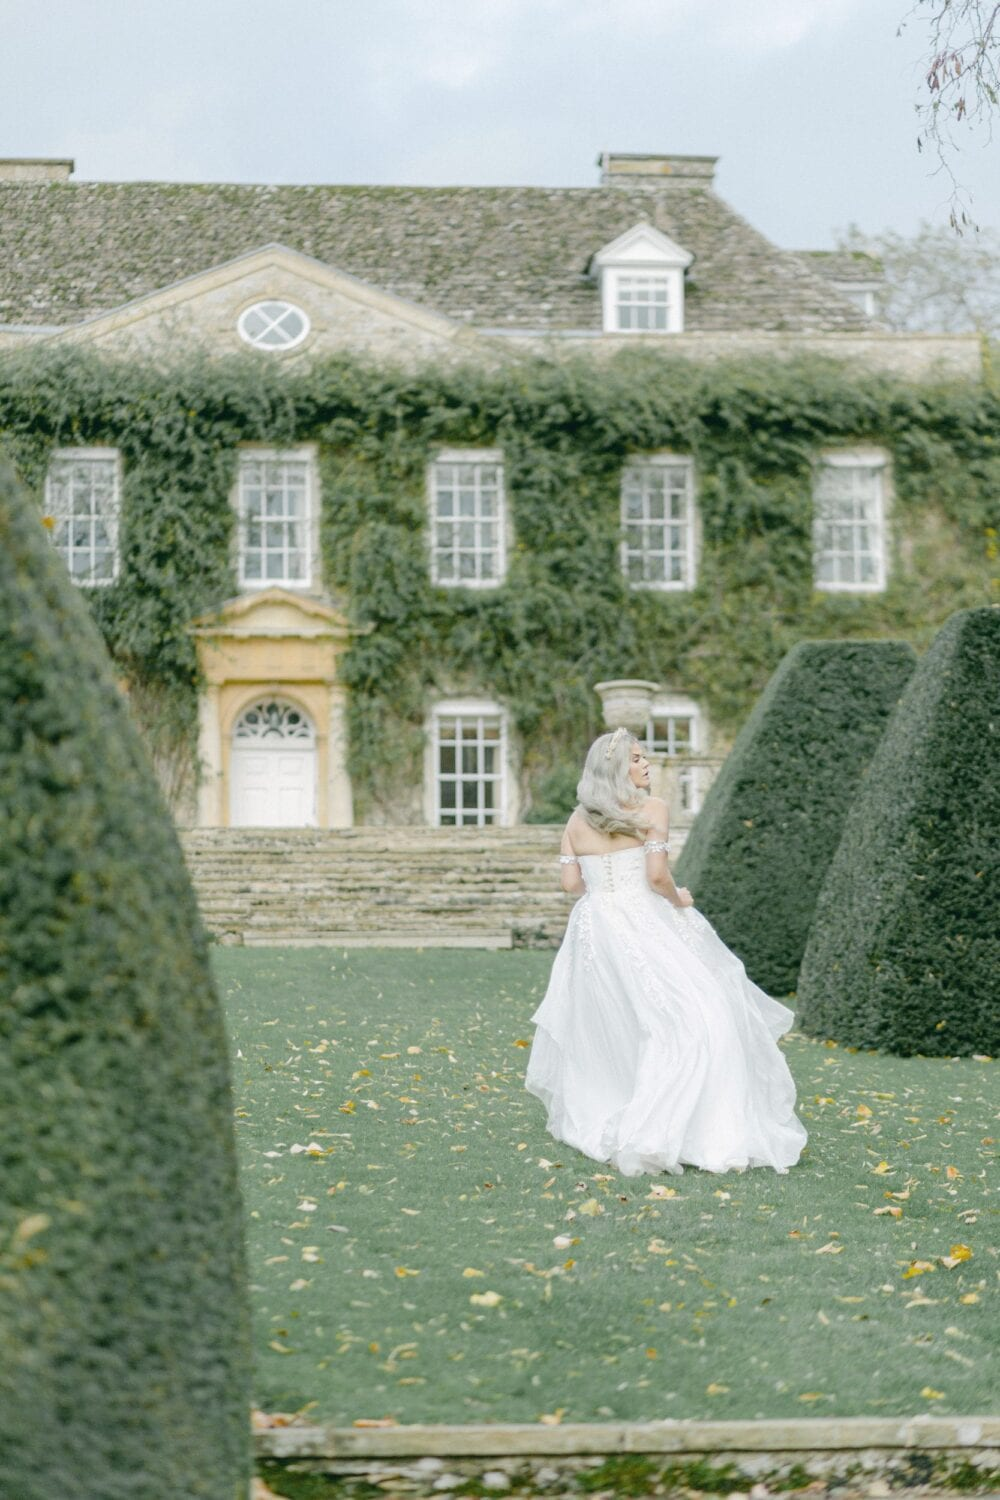 woman in dress walking in the garden near hedges amazing wedding planner - parties celebrations surrey